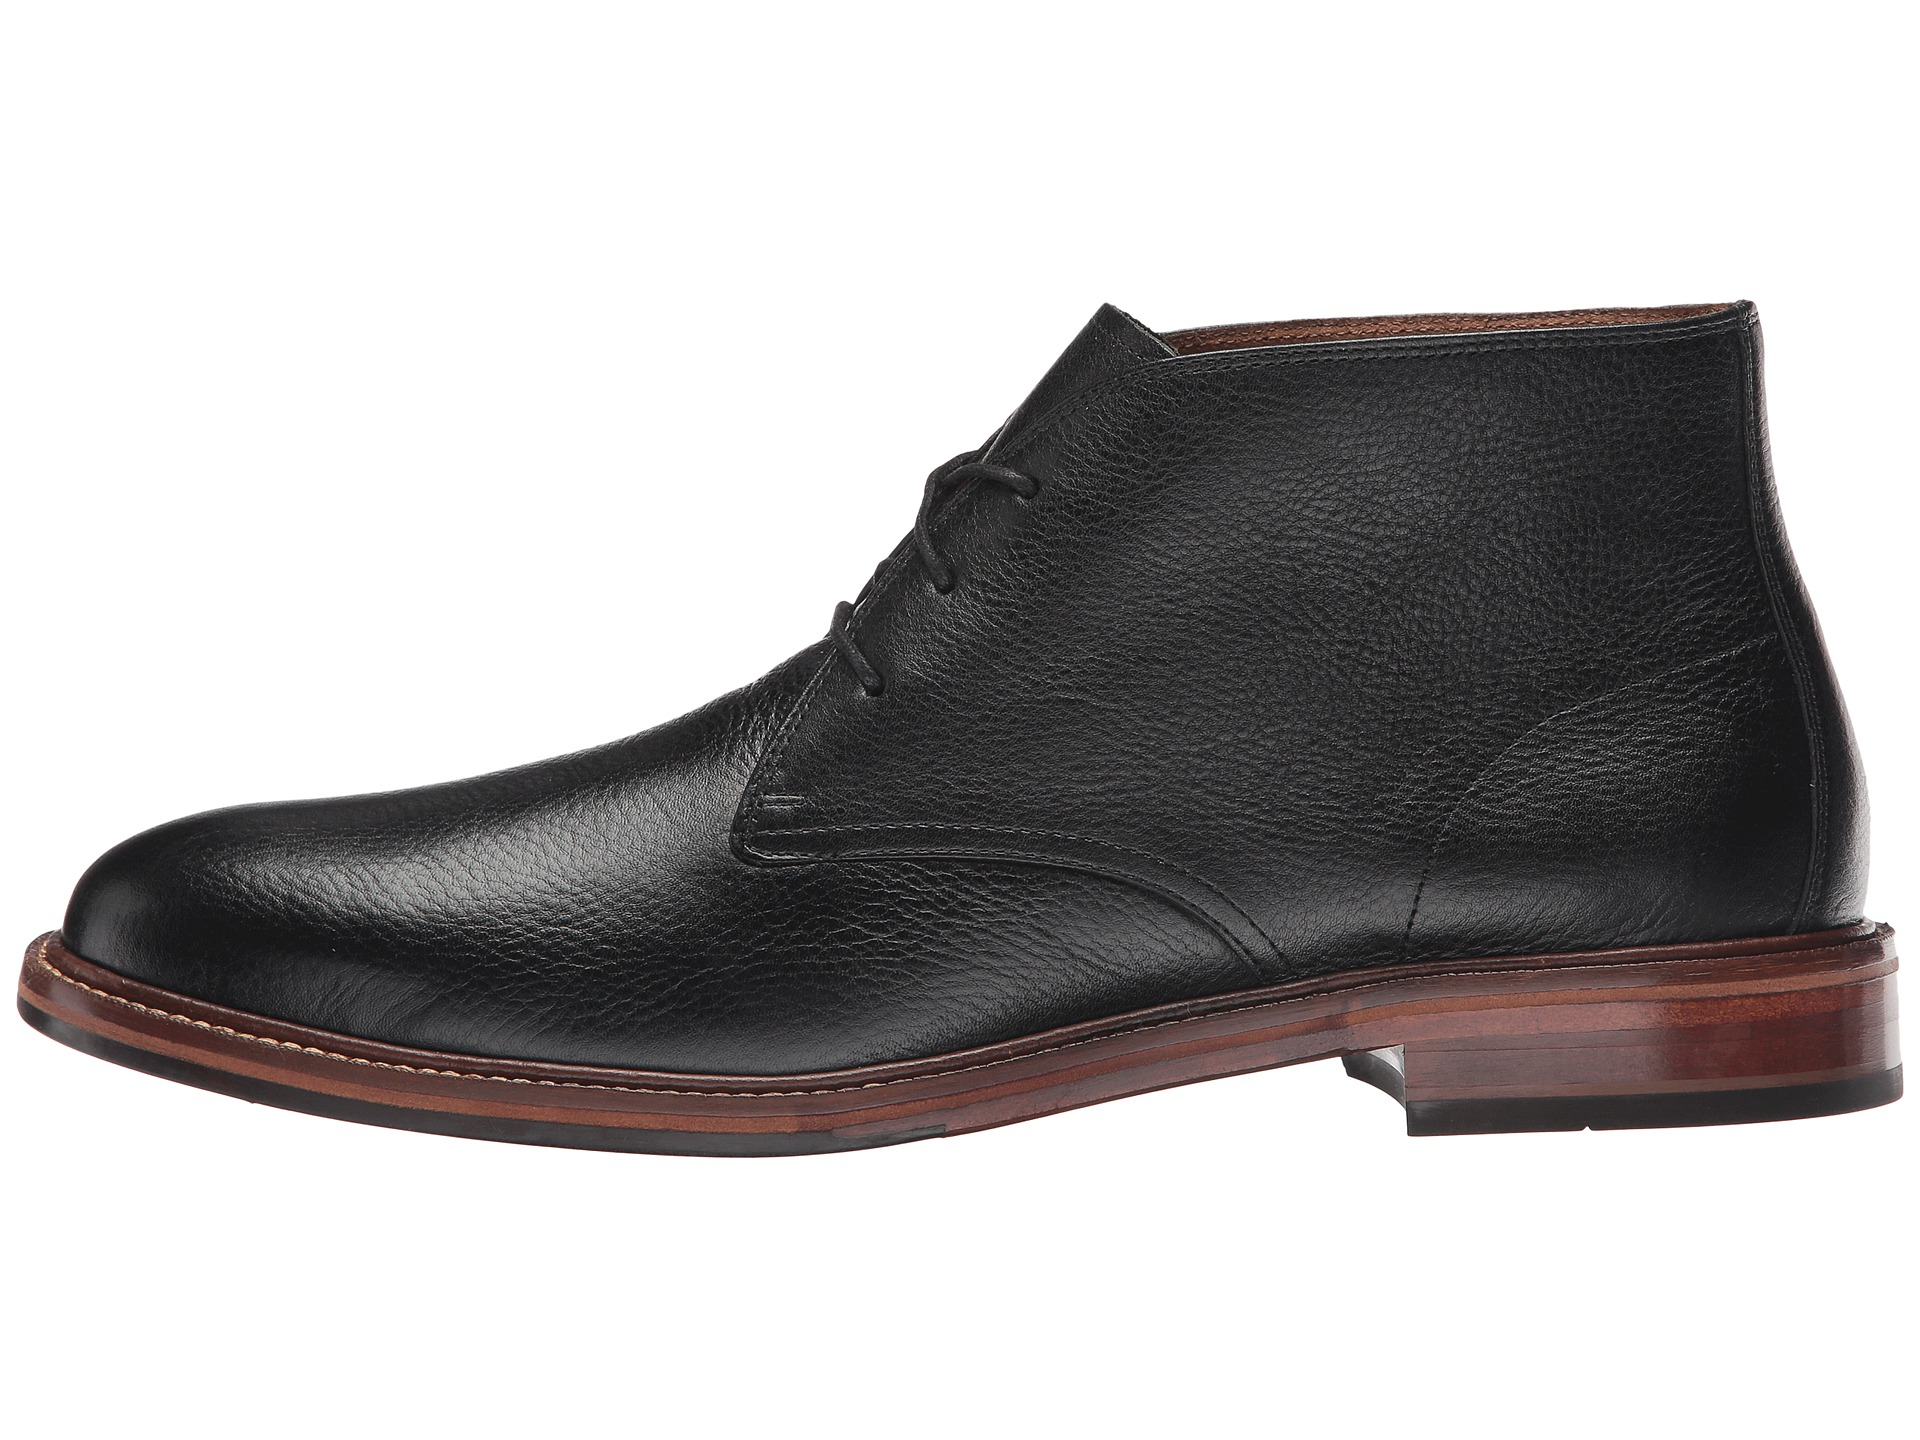 About Cole Haan Dustin Wingtip II Shoes - Leather (For Men) Closeouts. Boasting classic wingtip styling, allover brogue trim and a rich, burnished leather, Cole Haan's Dustin Wingtip II shoes are the quintessential oxfords every refined gentleman should own.